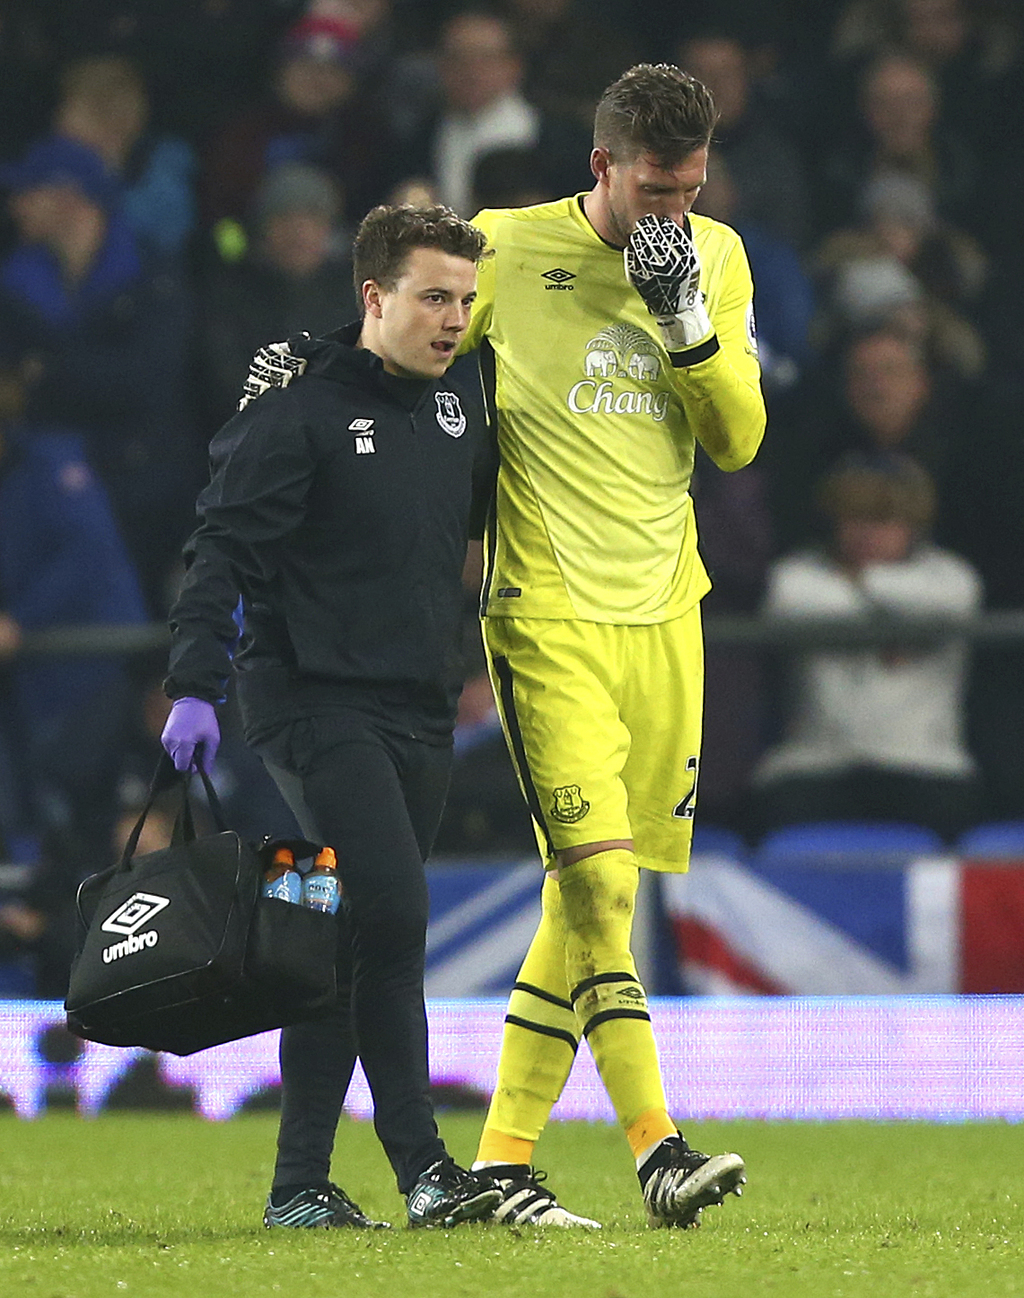 Everton's goalkeeper Maarten Stekelenburg, right, is helped from the pitch after getting injured during the English Premier League socc...